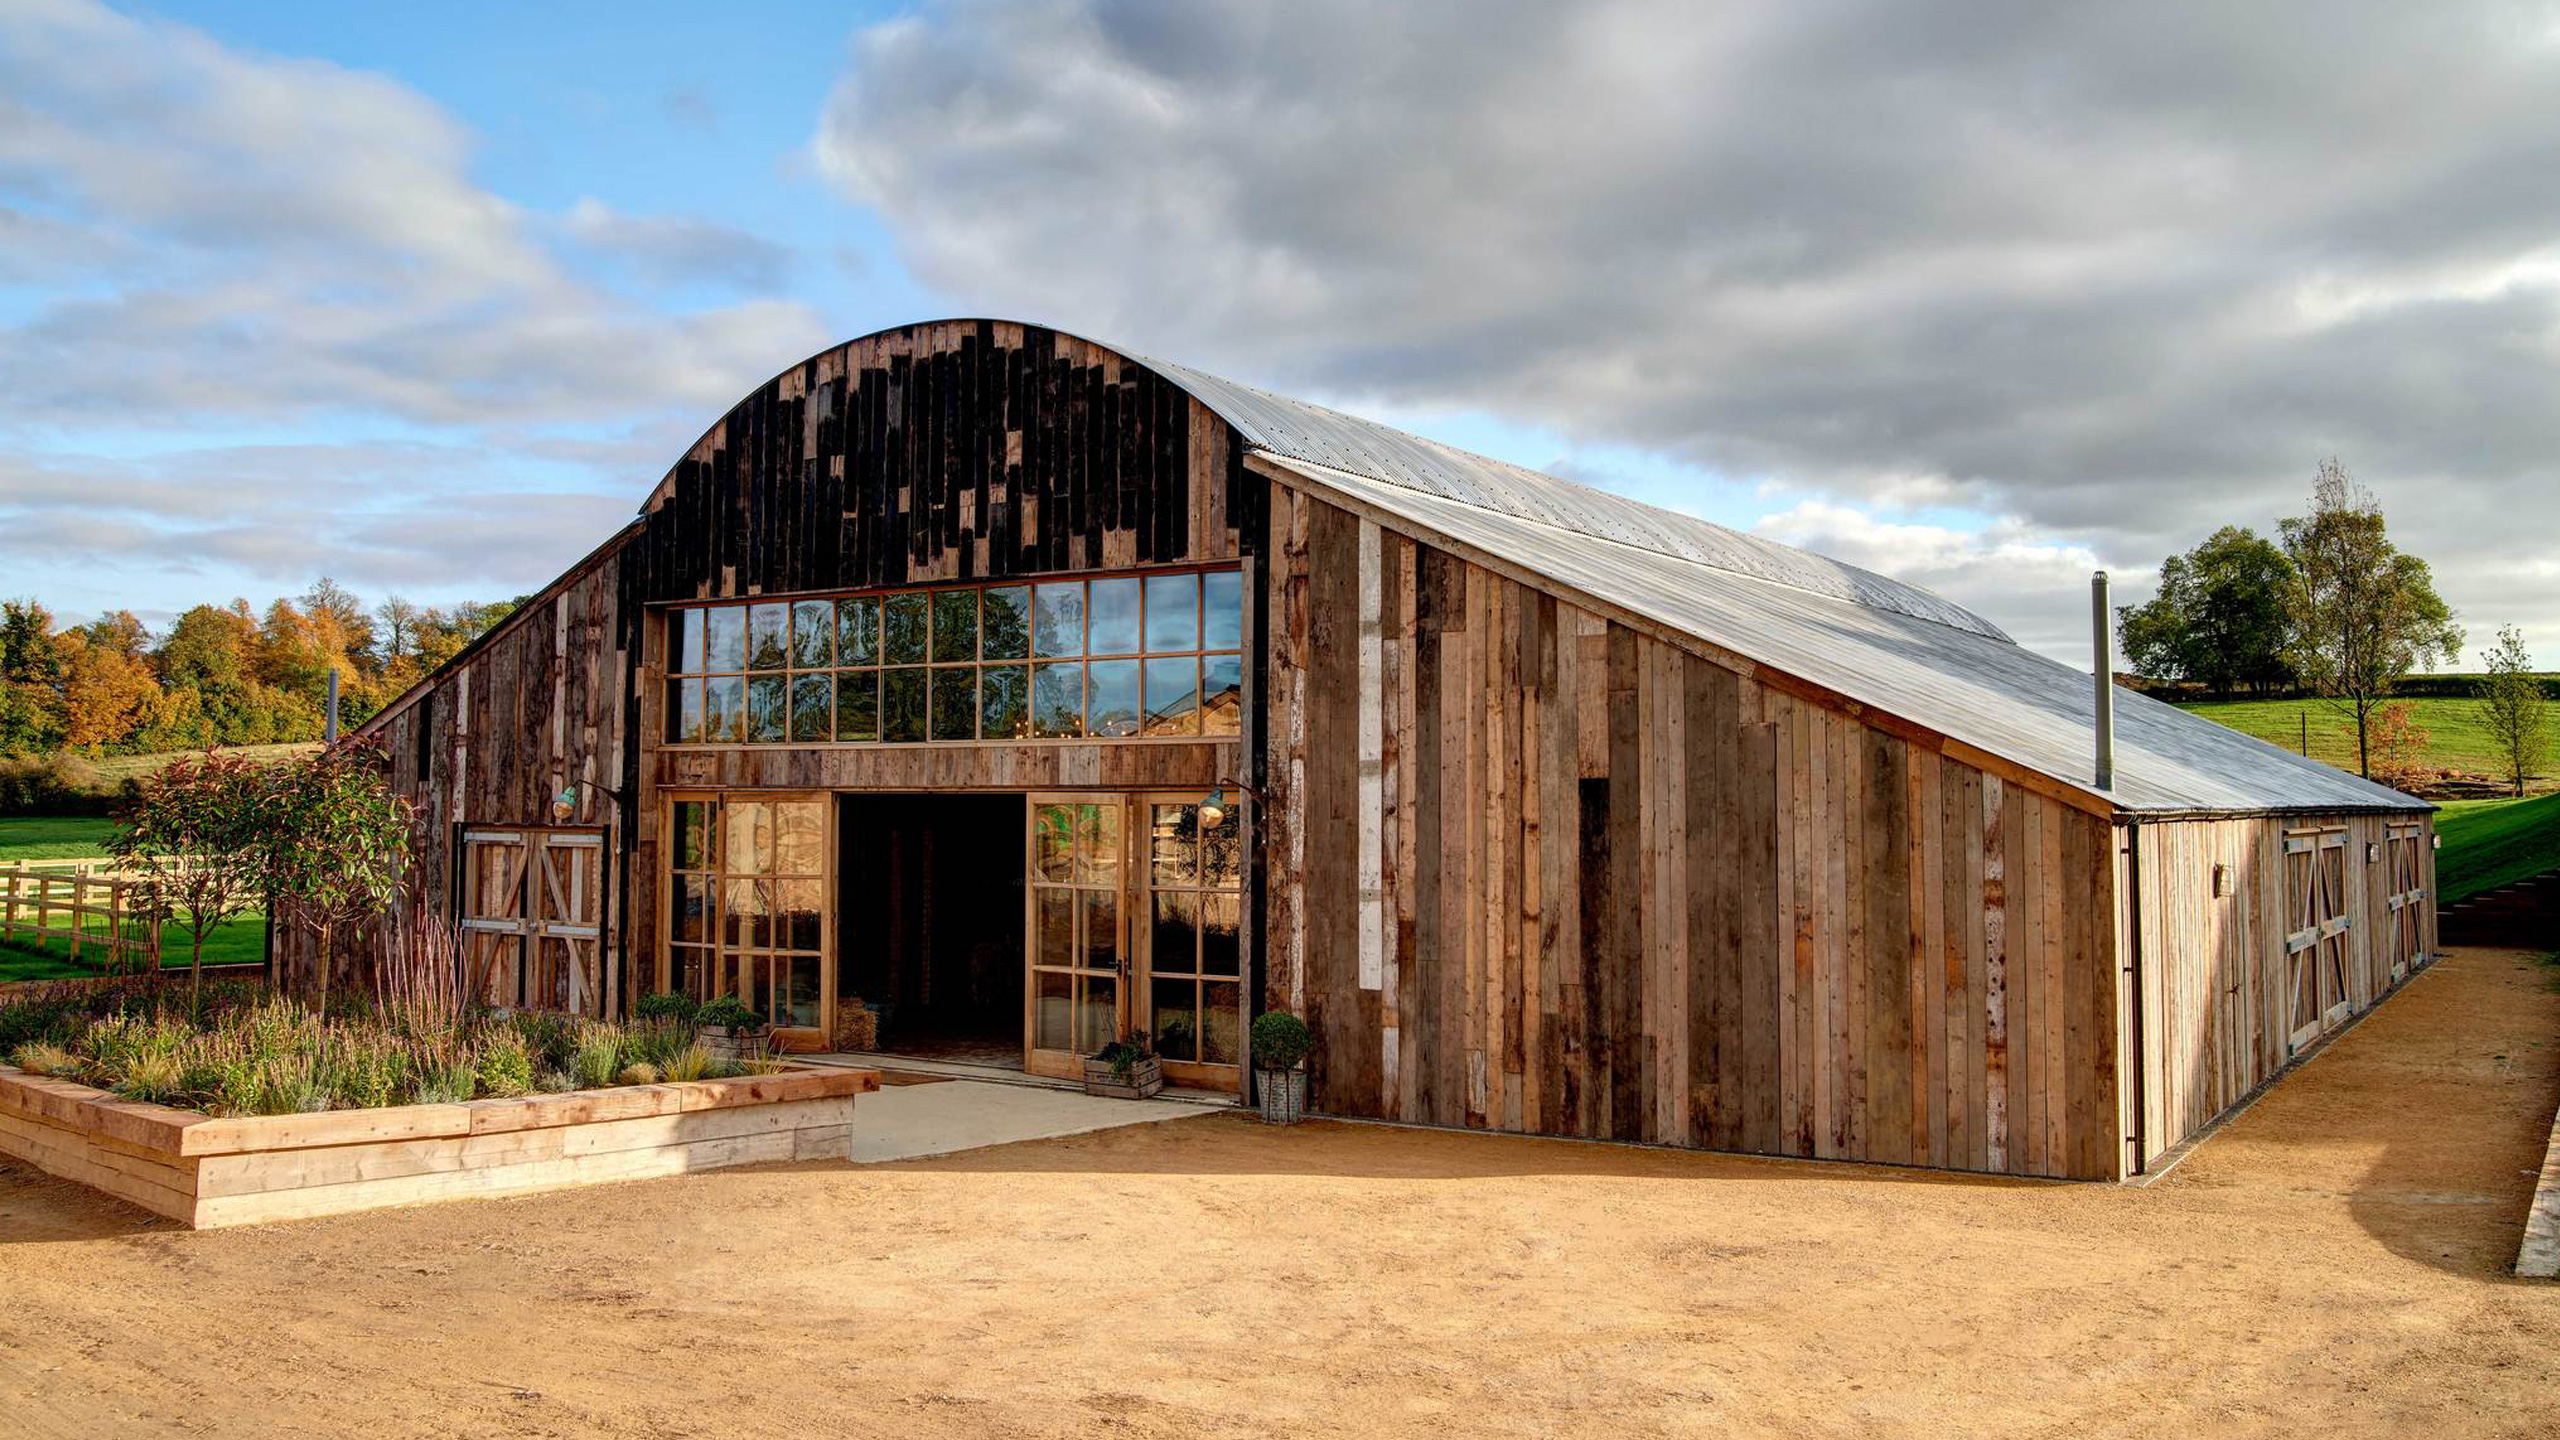 A similar sized barn restored with reclaimed materials!